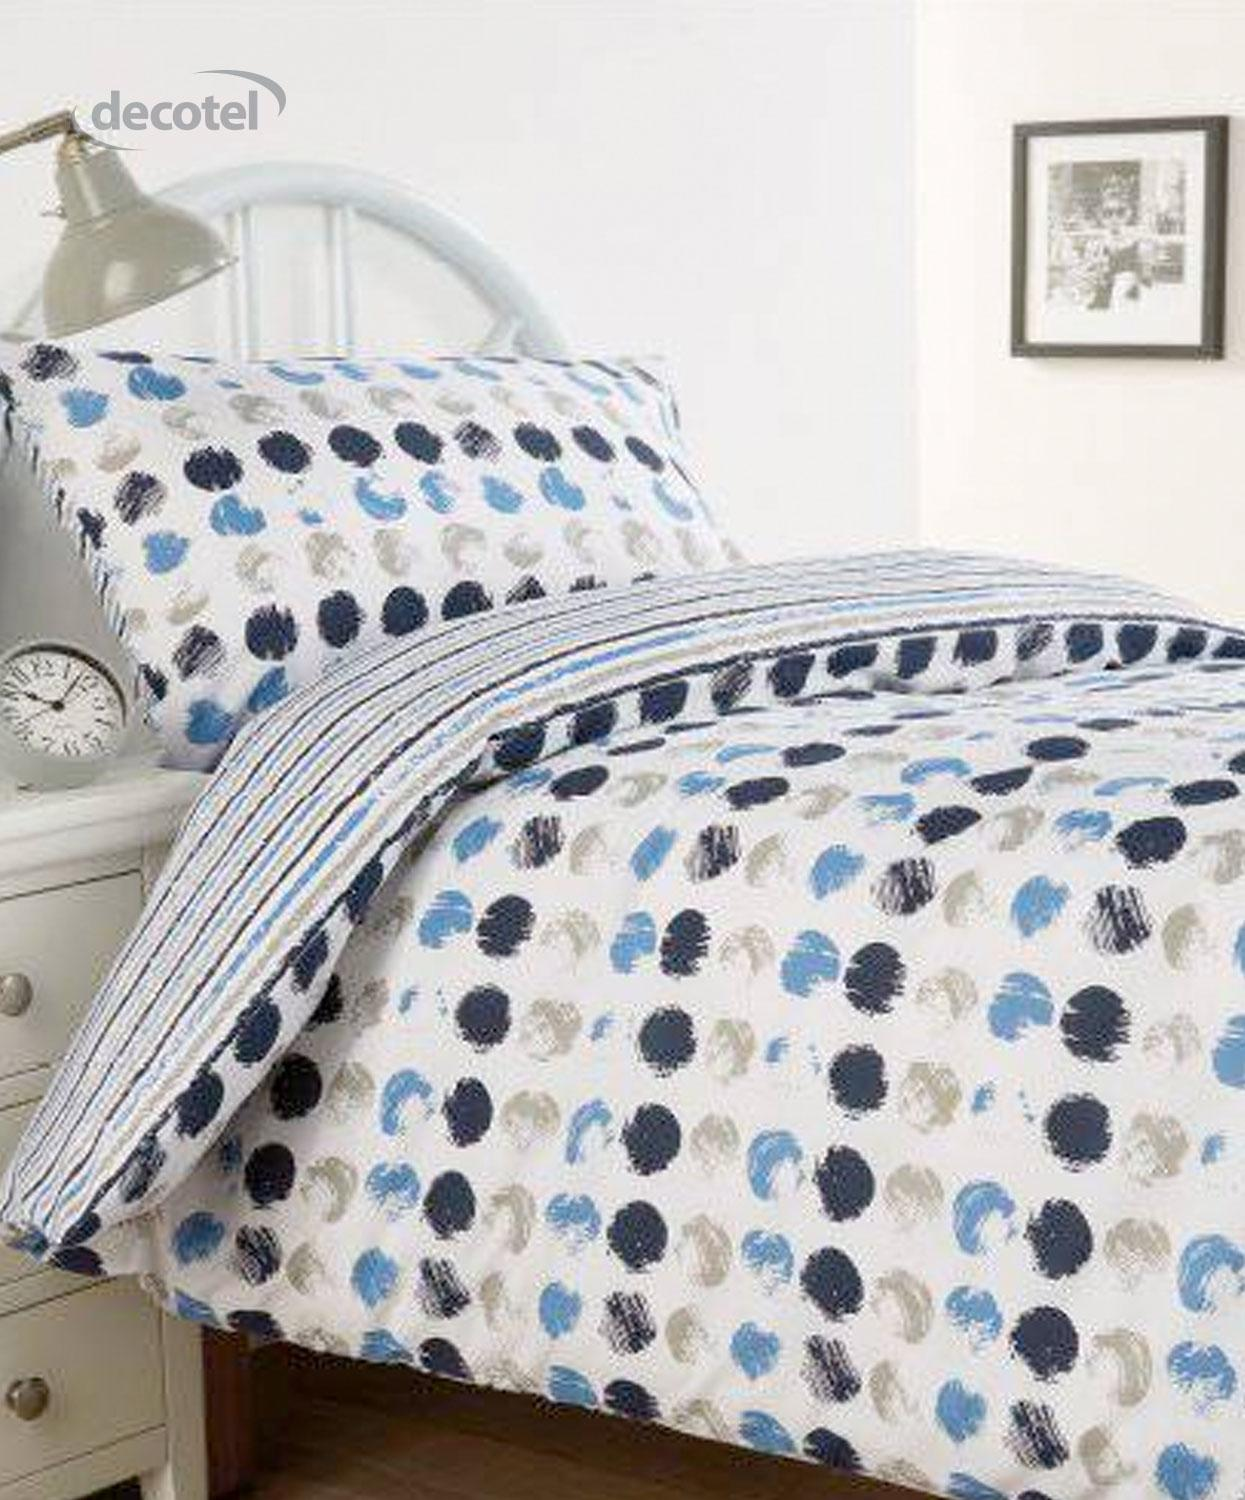 Harrow pillow case in blue